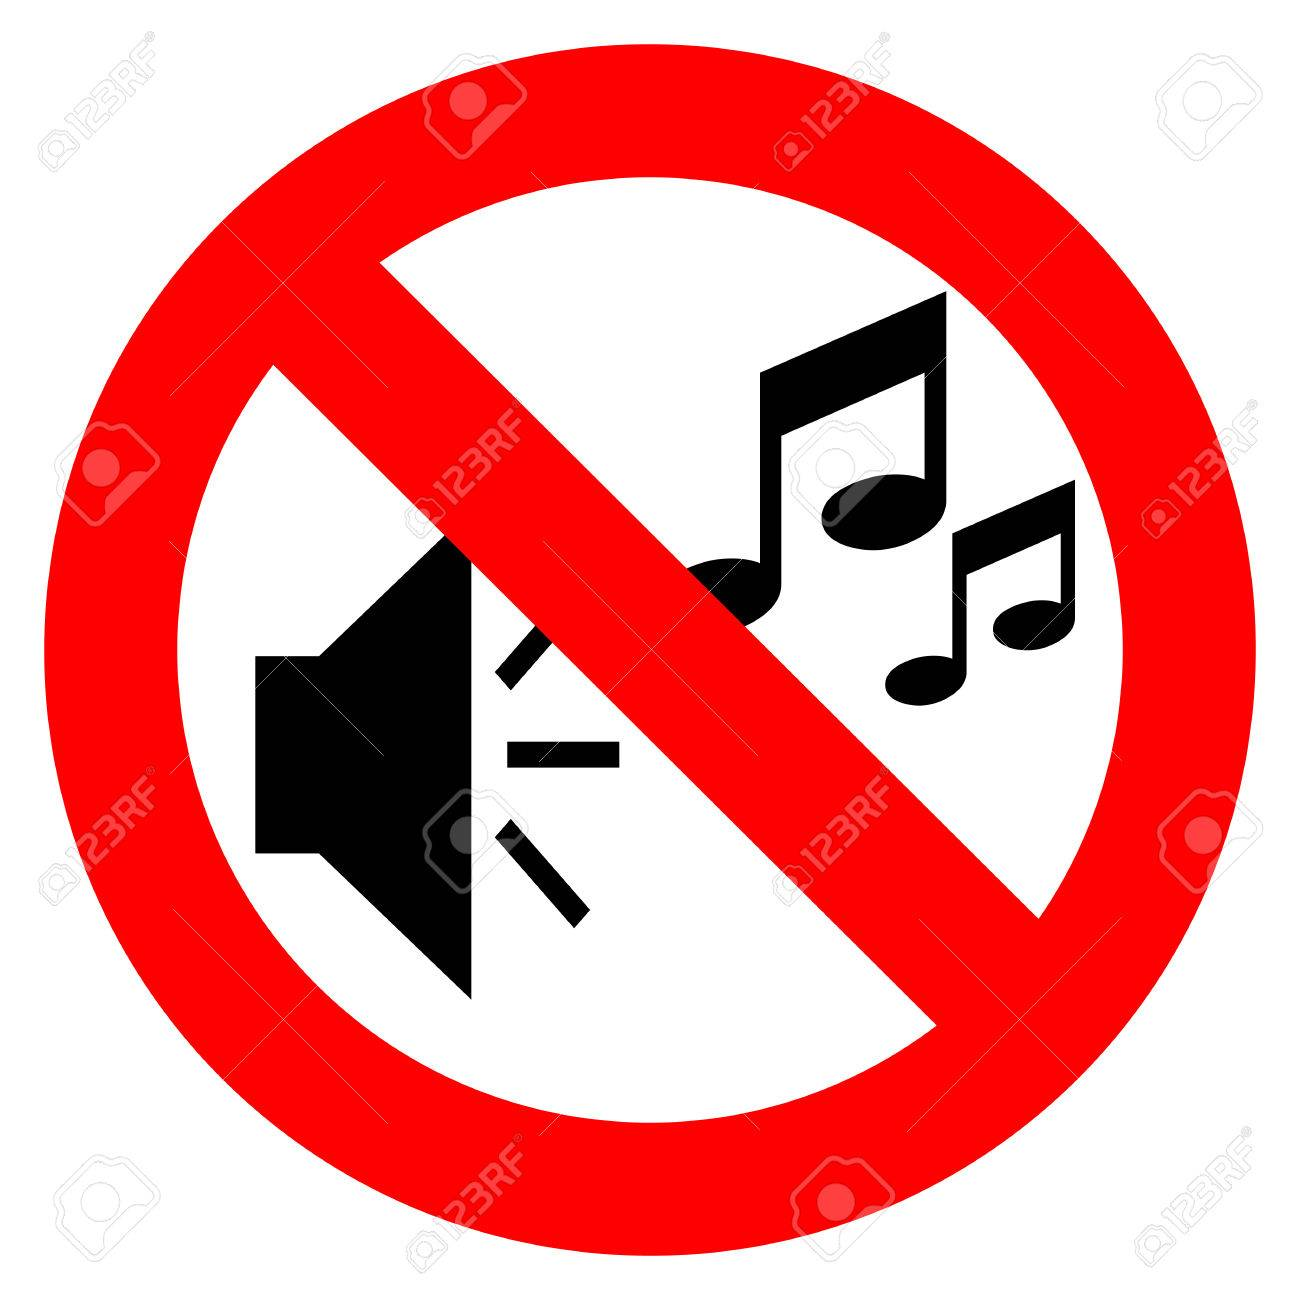 No music sign.